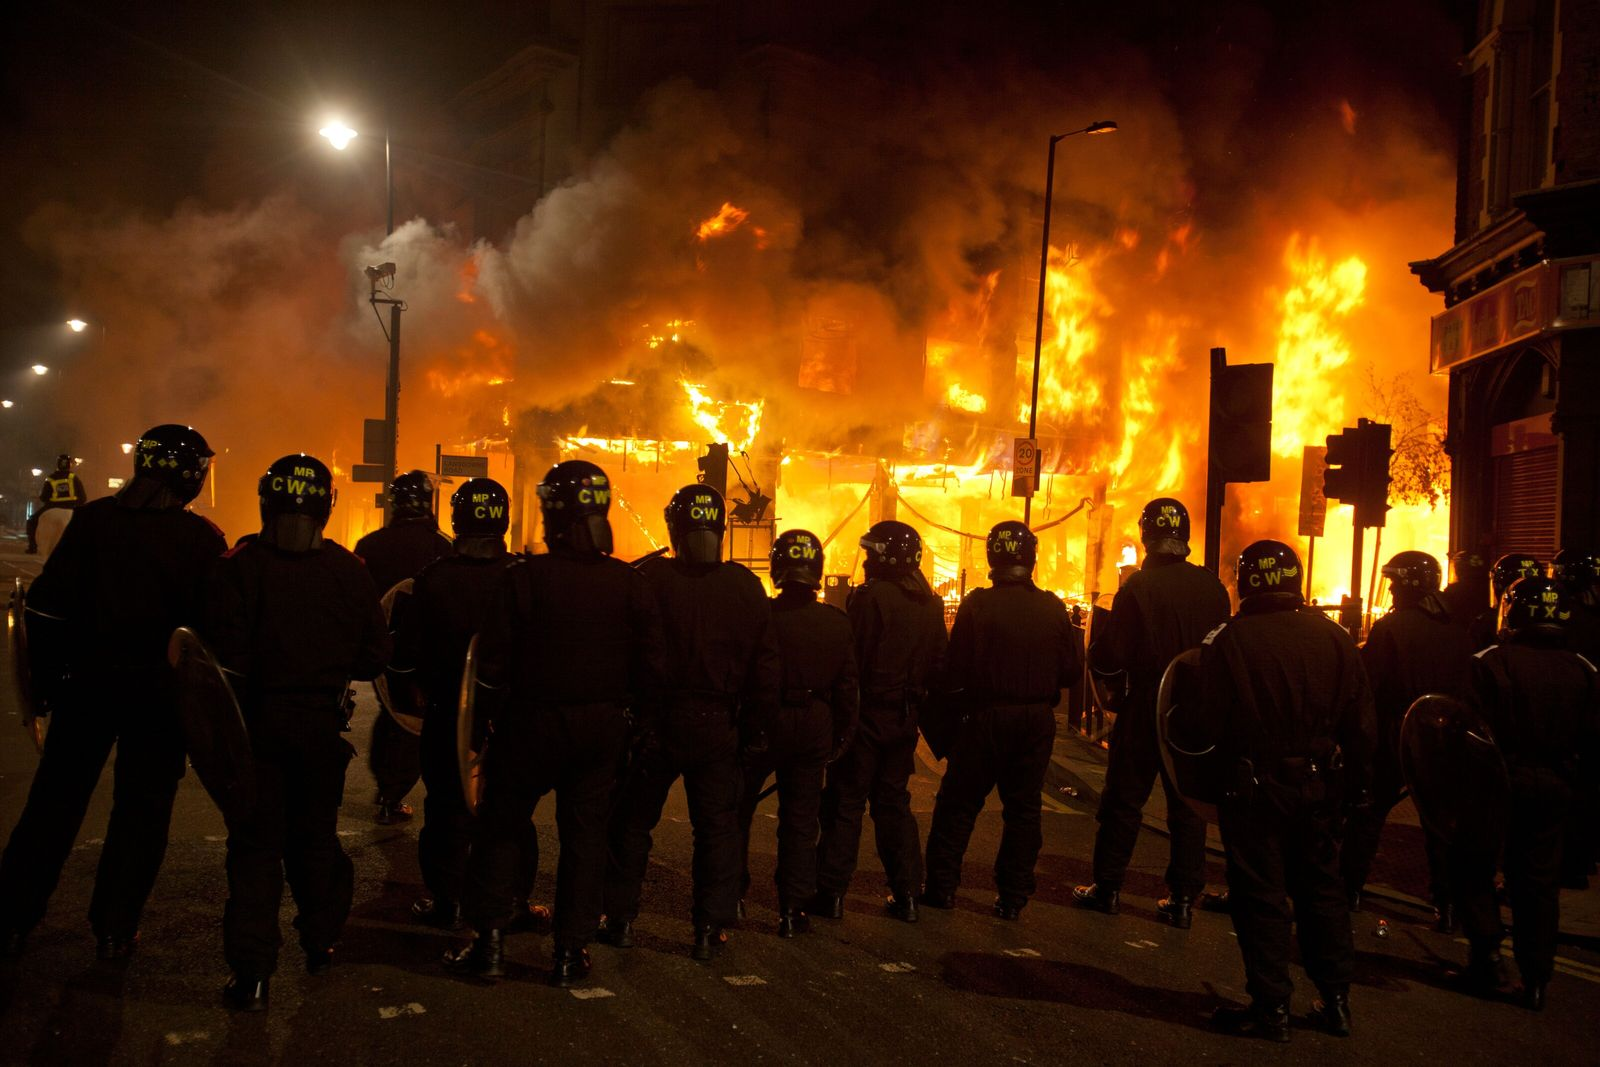 Police stand amidst rioting in Tottenham, London, in 2011. Civil unrest was spurred by the death ...